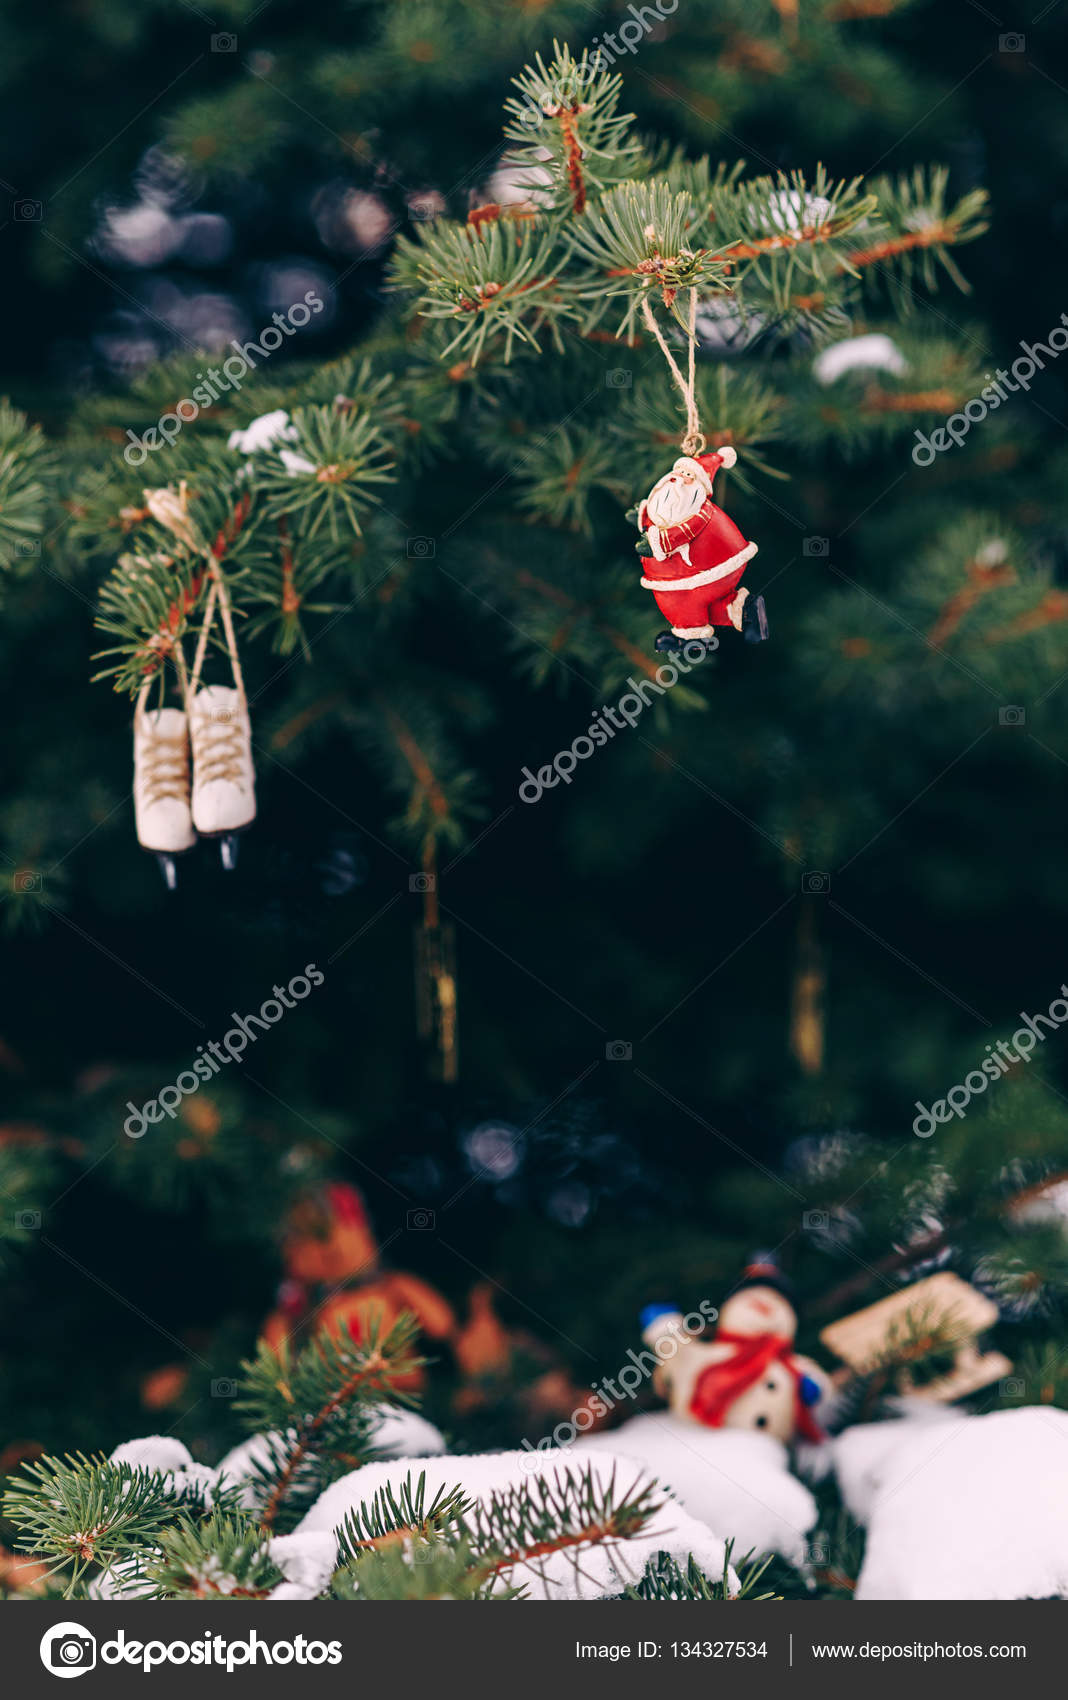 Closeup Christmas Tree Decoration Handmade Miniature Santa Small Snowman With Wooden Sled And Ice Skates On The Branch Stock Photo Image By C Gorynvolodymyr 134327534